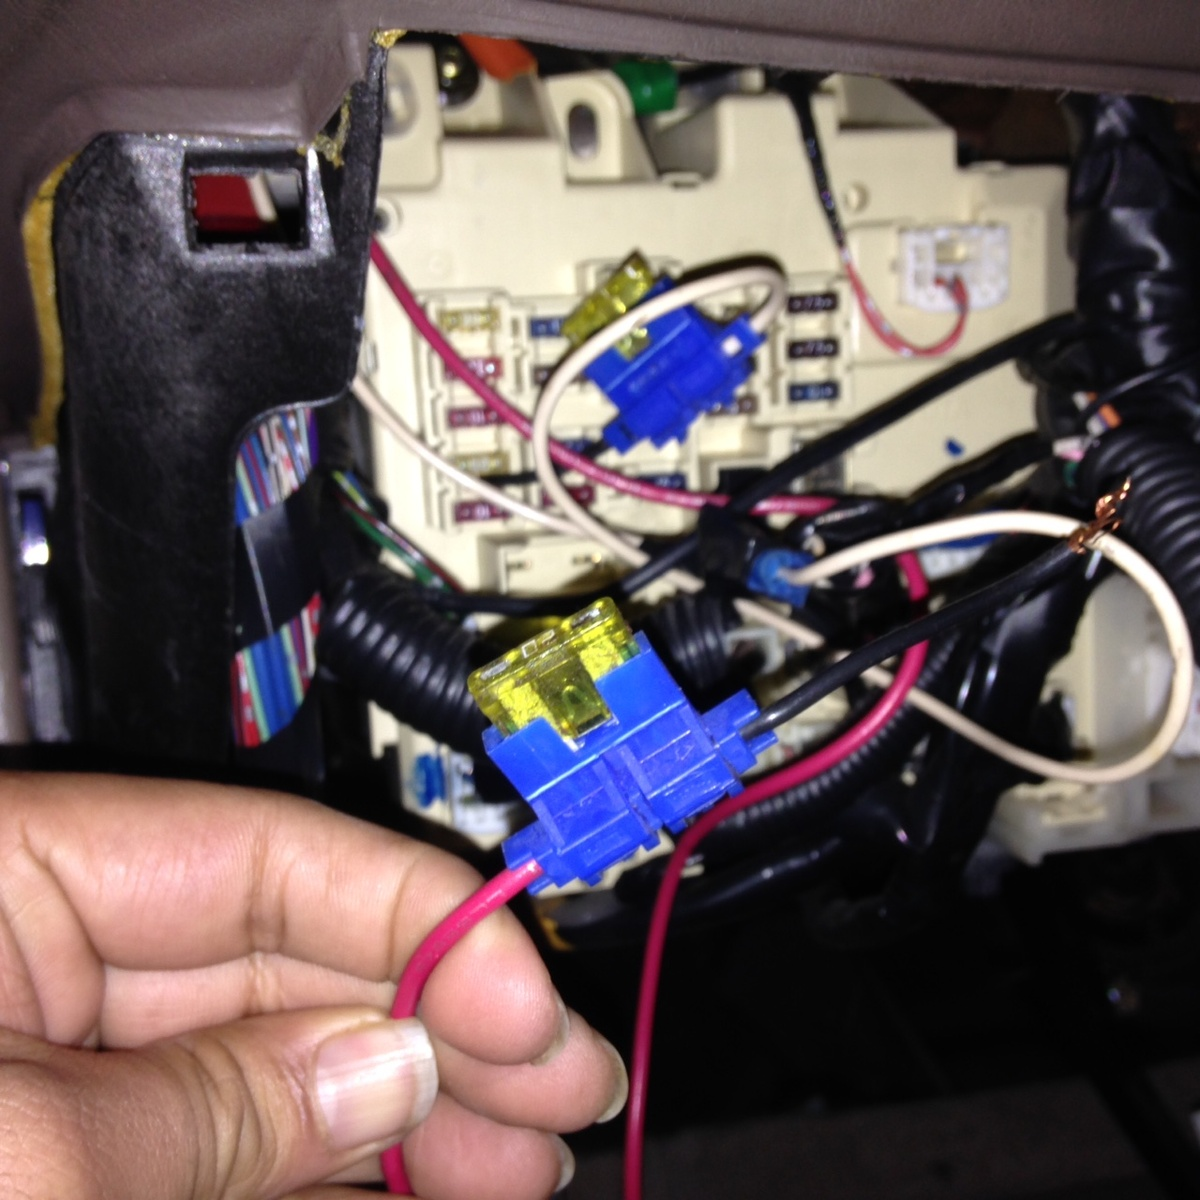 1998 toyota camry wiring schematic toyota camry questions i have 1998 toyota camry while  i have 1998 toyota camry